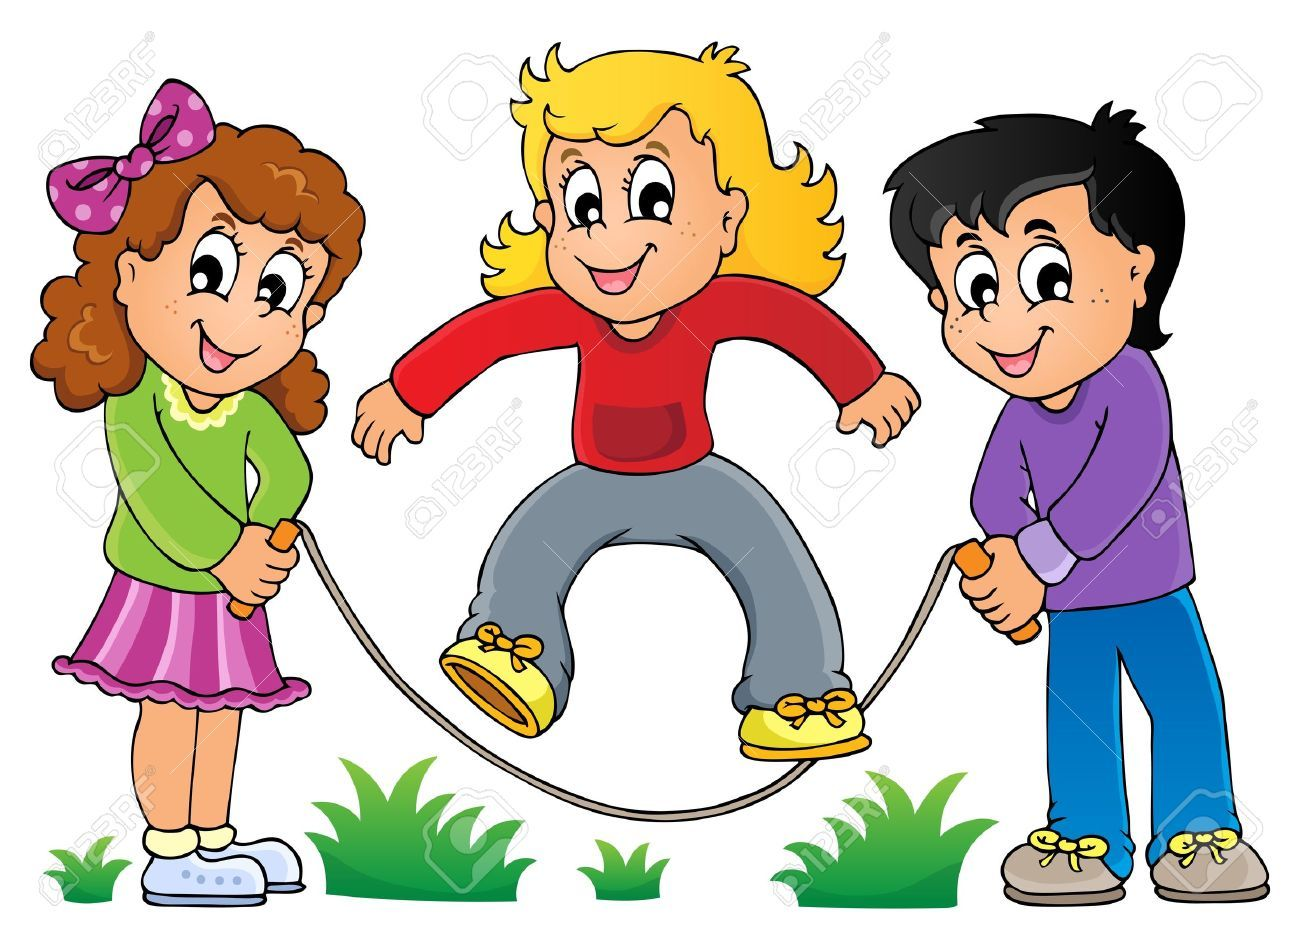 svg free stock Kids playing together clipart. Portal .